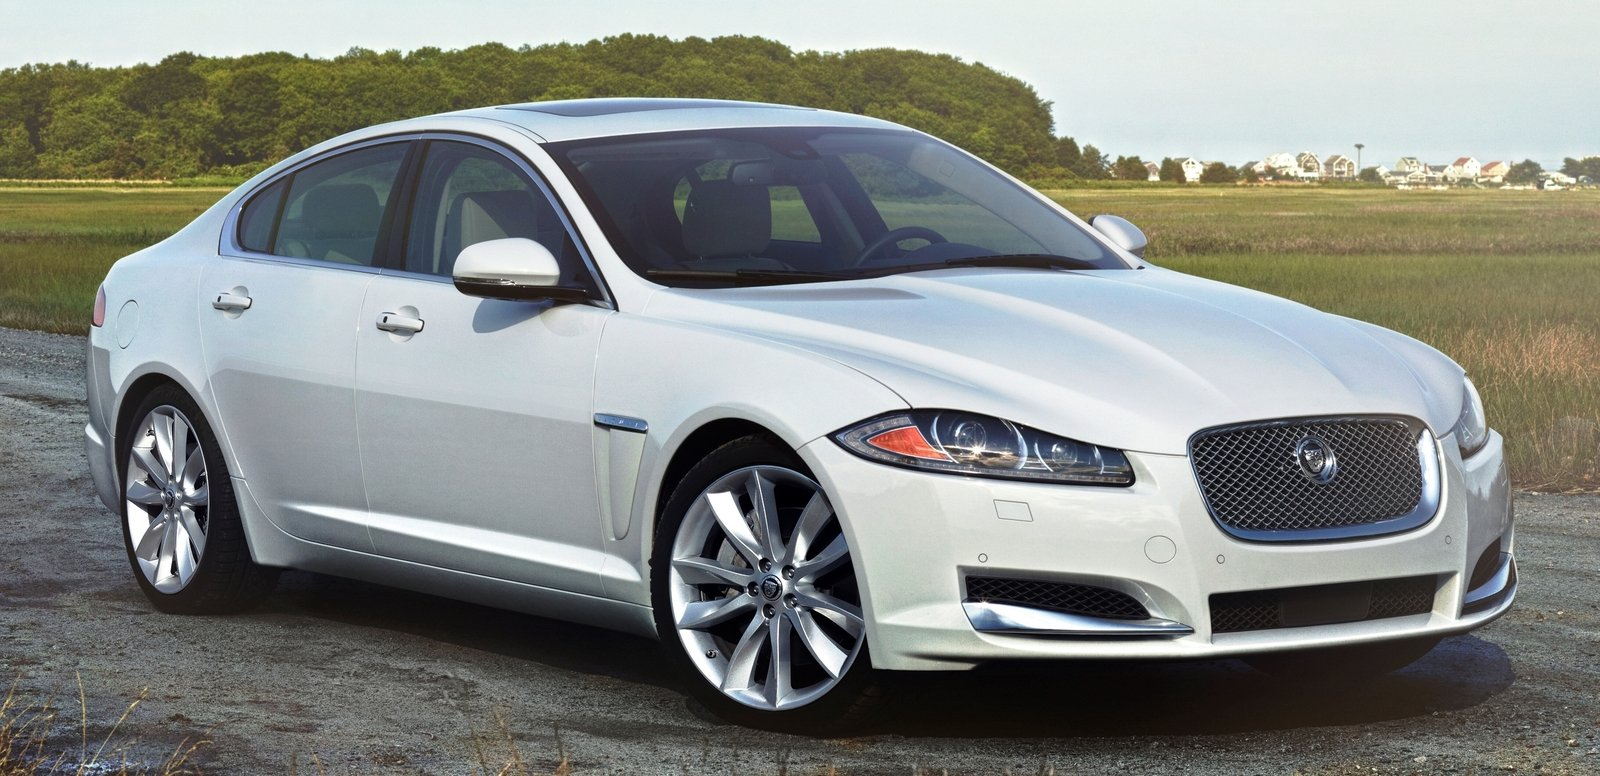 2014 2015 jaguar xf picture 513729 car review top speed. Black Bedroom Furniture Sets. Home Design Ideas